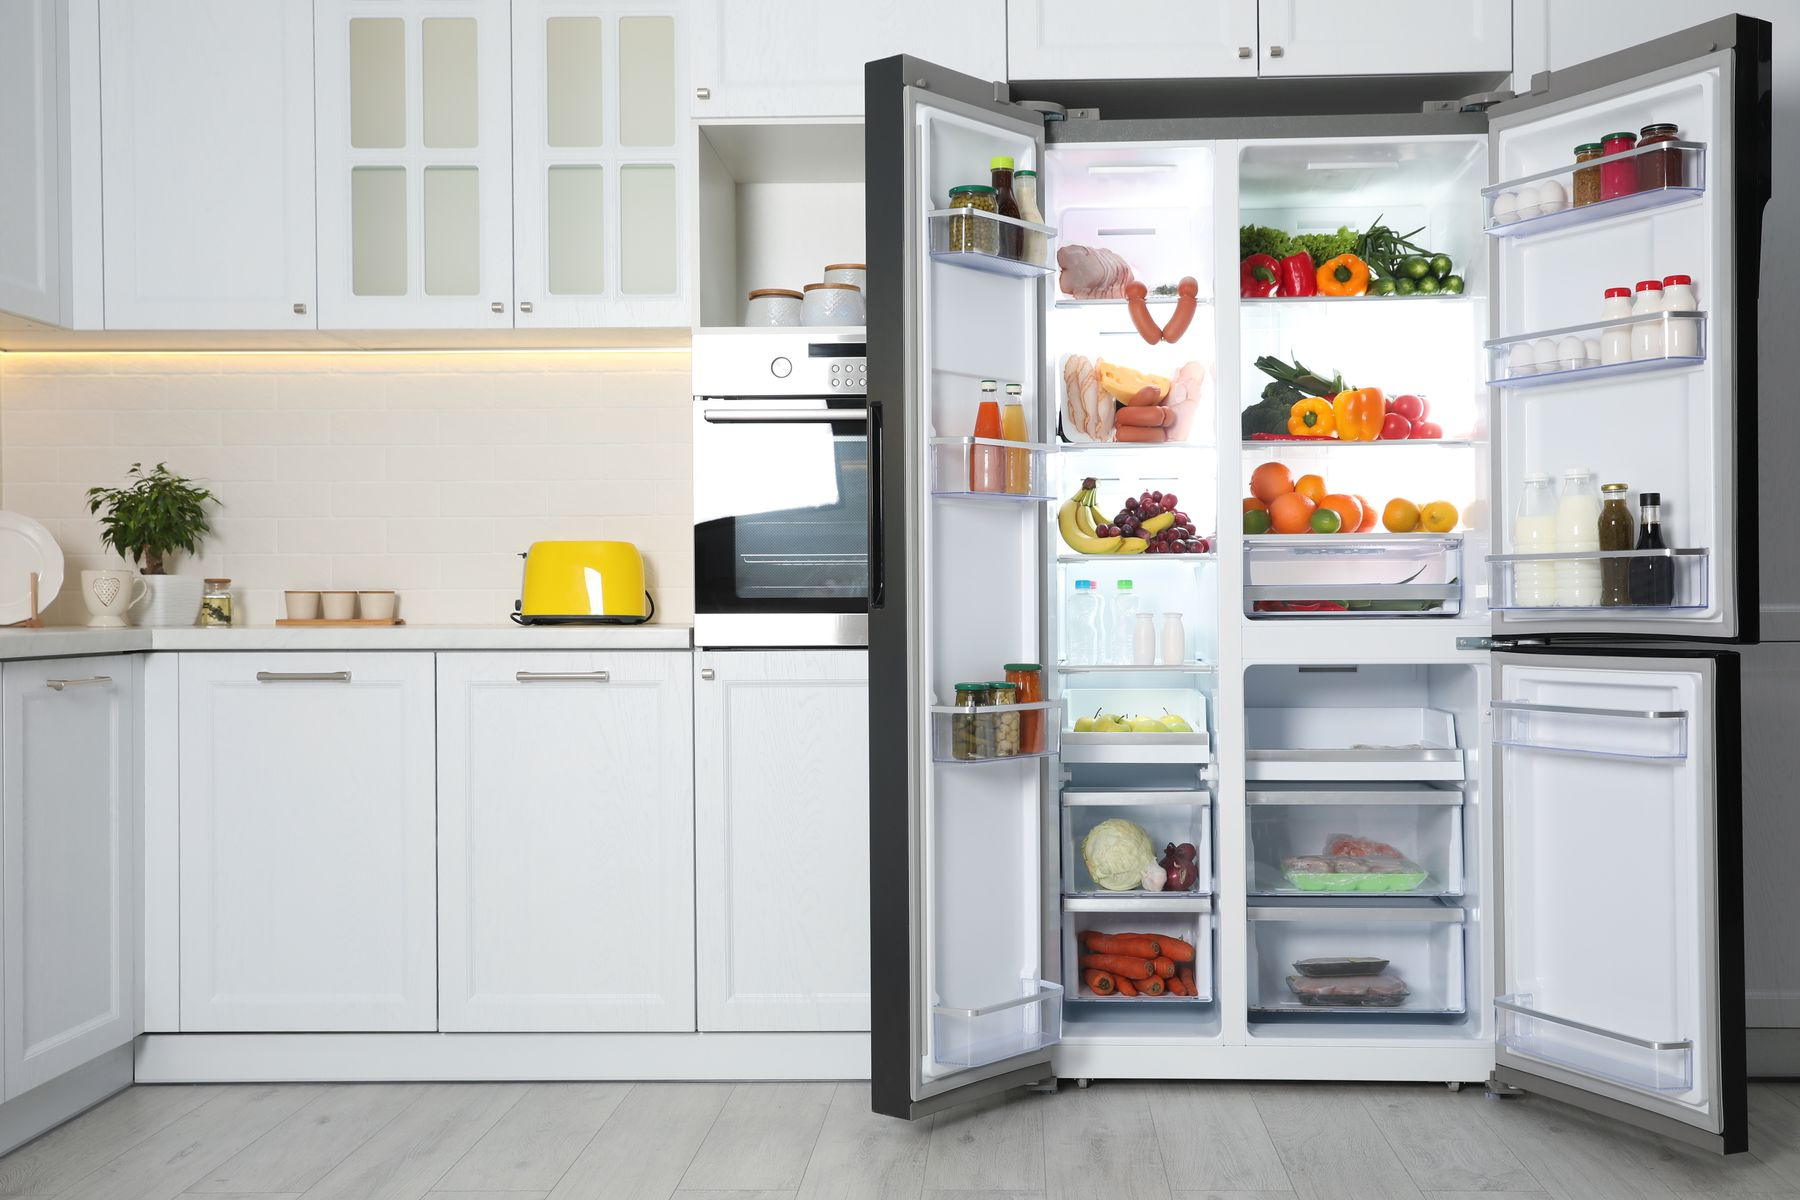 How to Defrost Your Fridge the Right Way shutterstock 1670087806